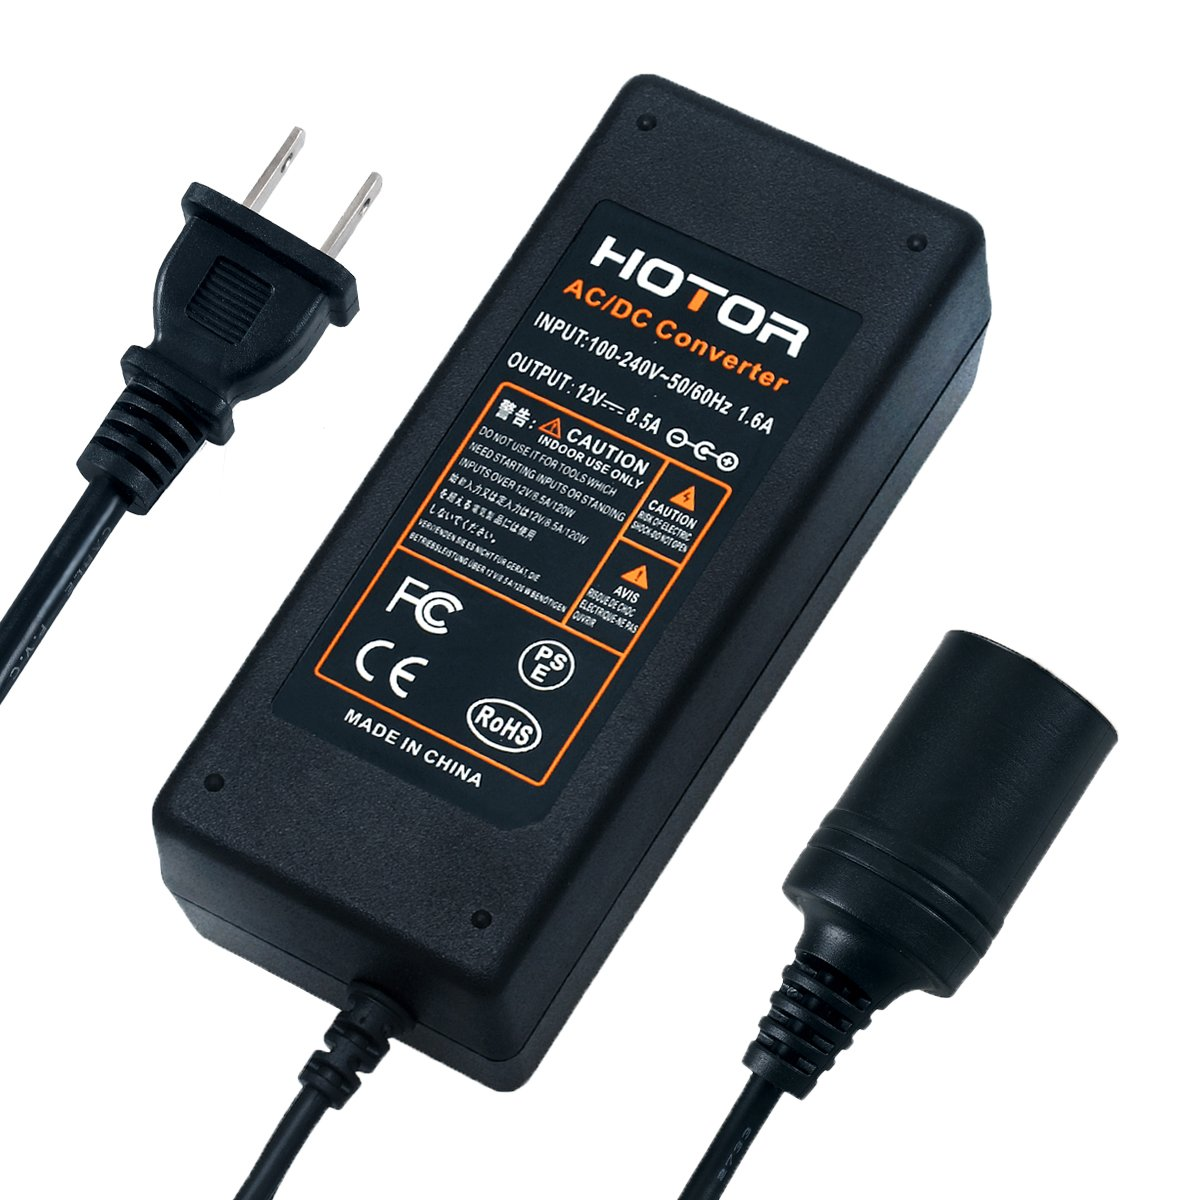 AC to DC Converter, HOTOR 8.5A 100W 110-220V to 12V Car Cigarette Lighter Socket AC DC Power Adapter for Car Vacuum and Other 12V Devices Under 100W, but Don't use it for Car Refrigerator! by HOTOR